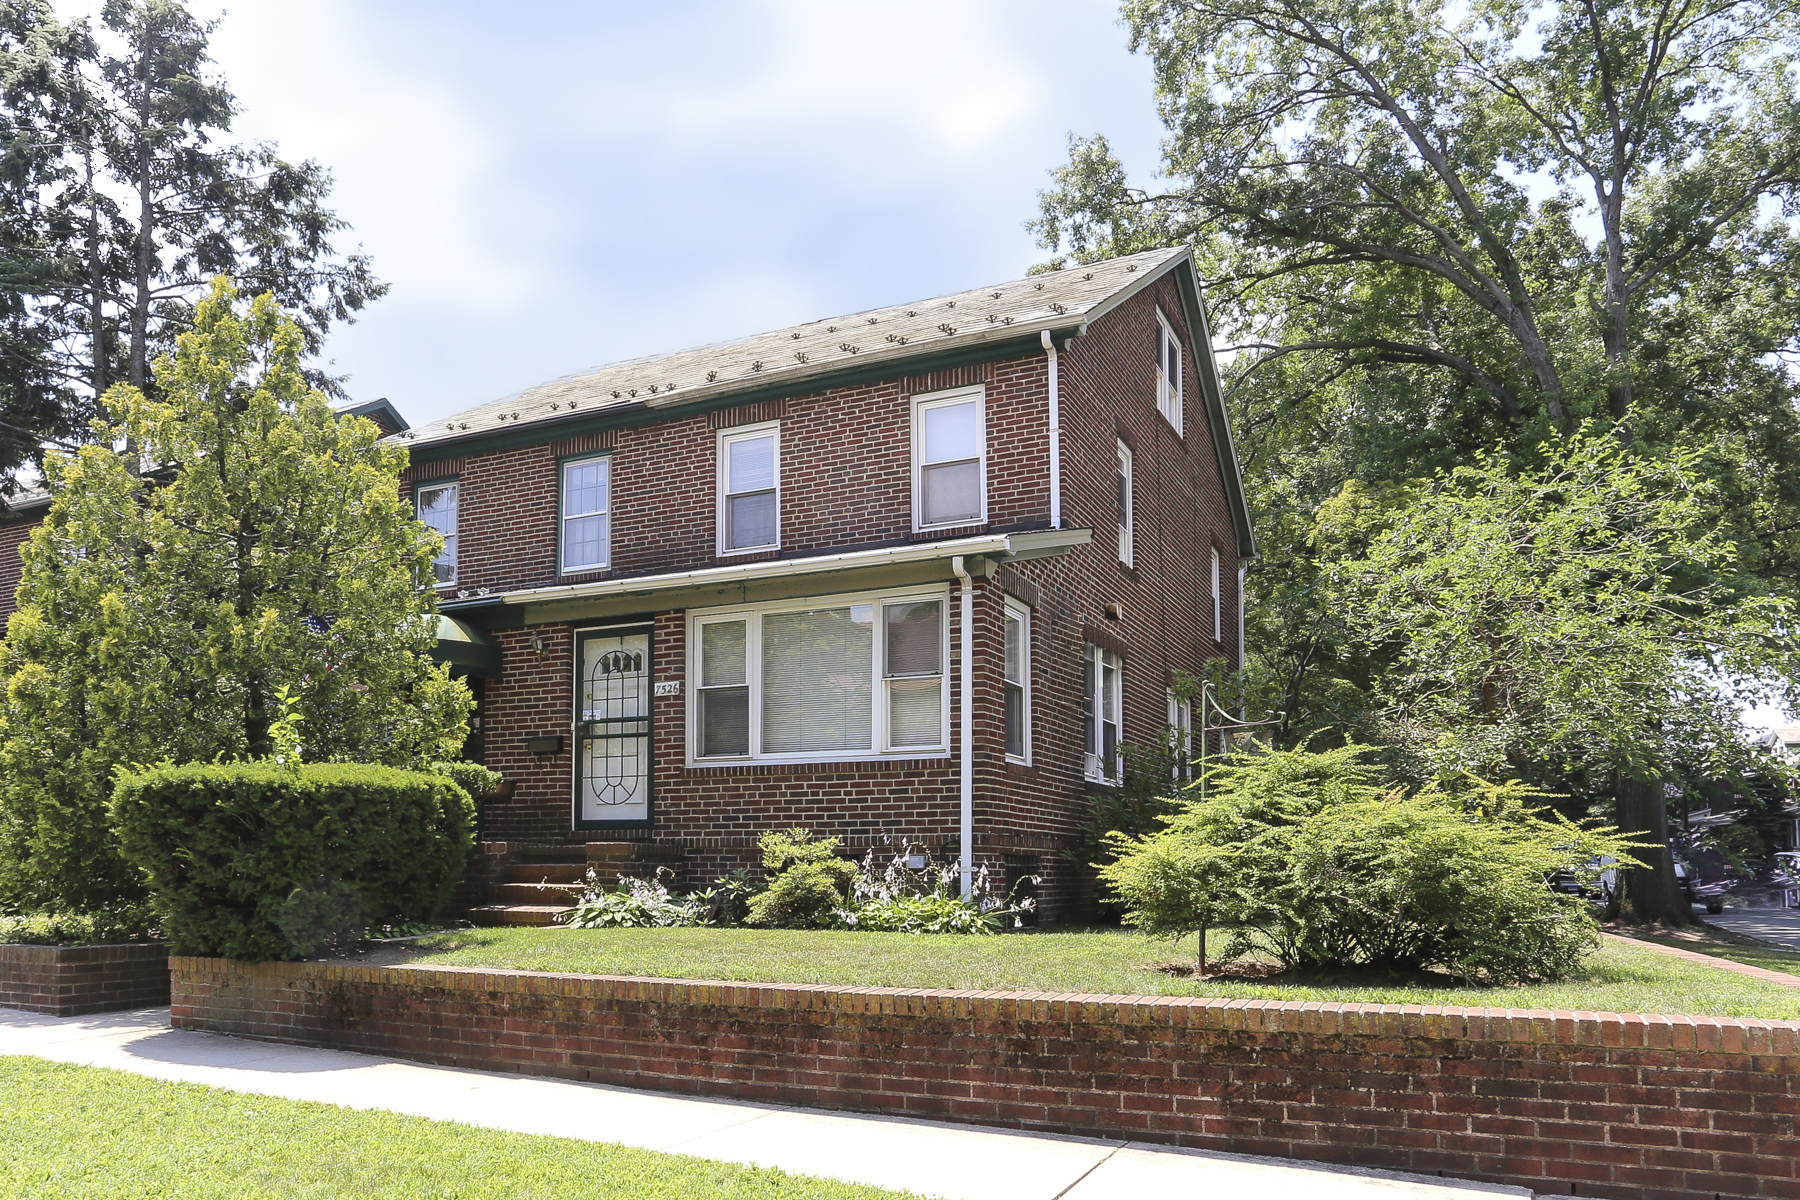 """Single Family Home for Rent at """"SEMI-ATTACHED RENOVATED HOUSE"""" Forest Hills, New York 11375 United States"""